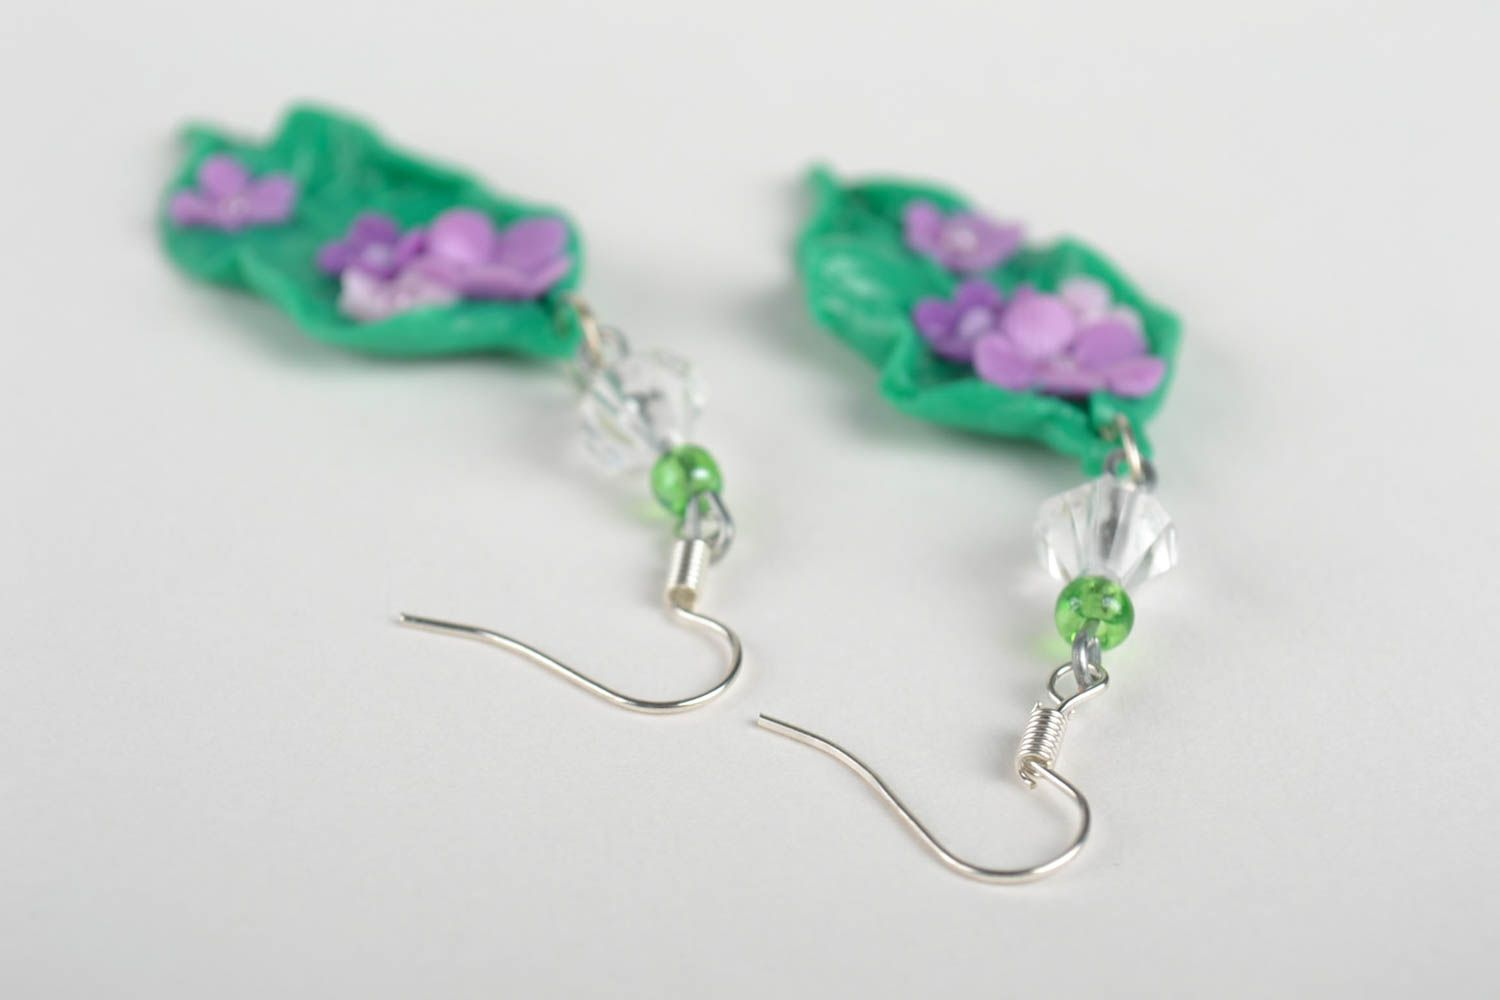 Polymer Clay Earrings Handmade Designer Handcrafted Jewelry Gift Ideas Madeheart